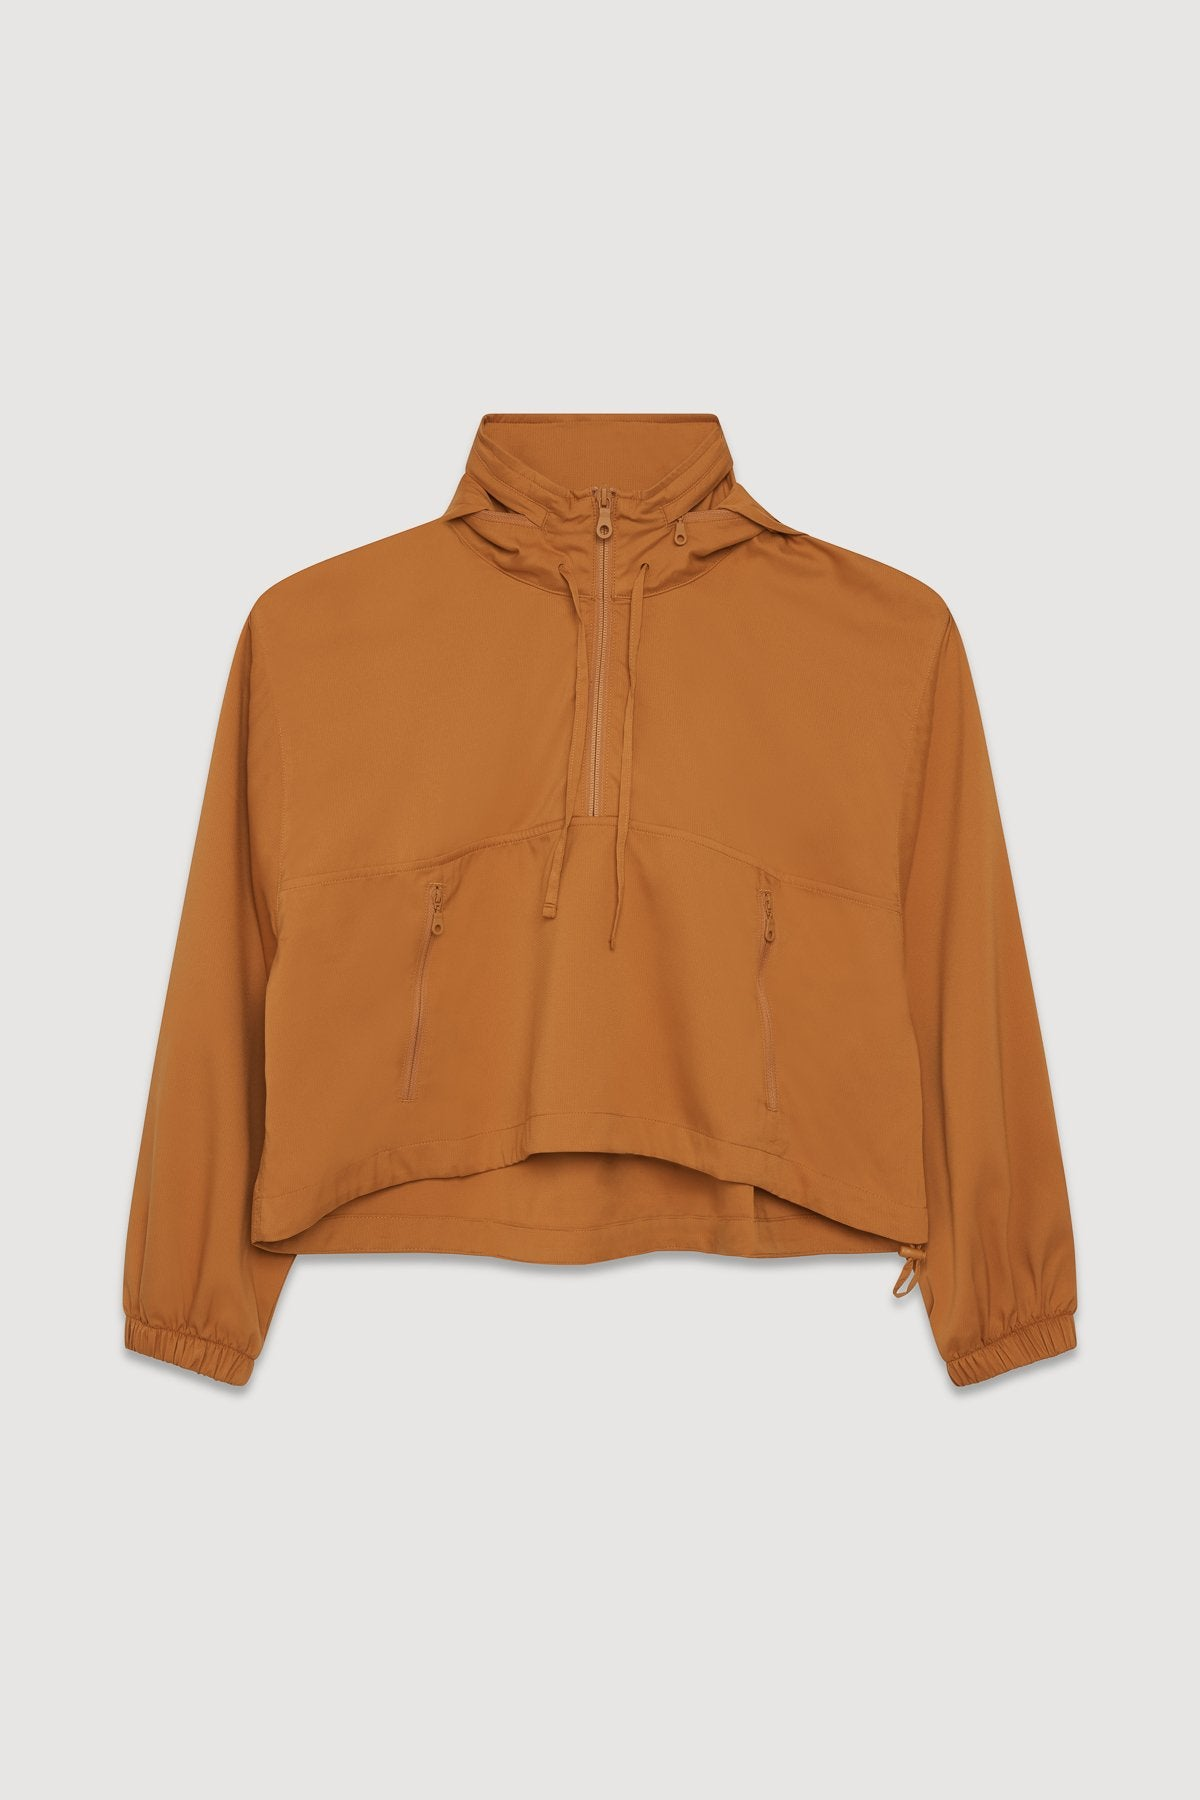 Twig Hummingbird Half Zip Windbreaker